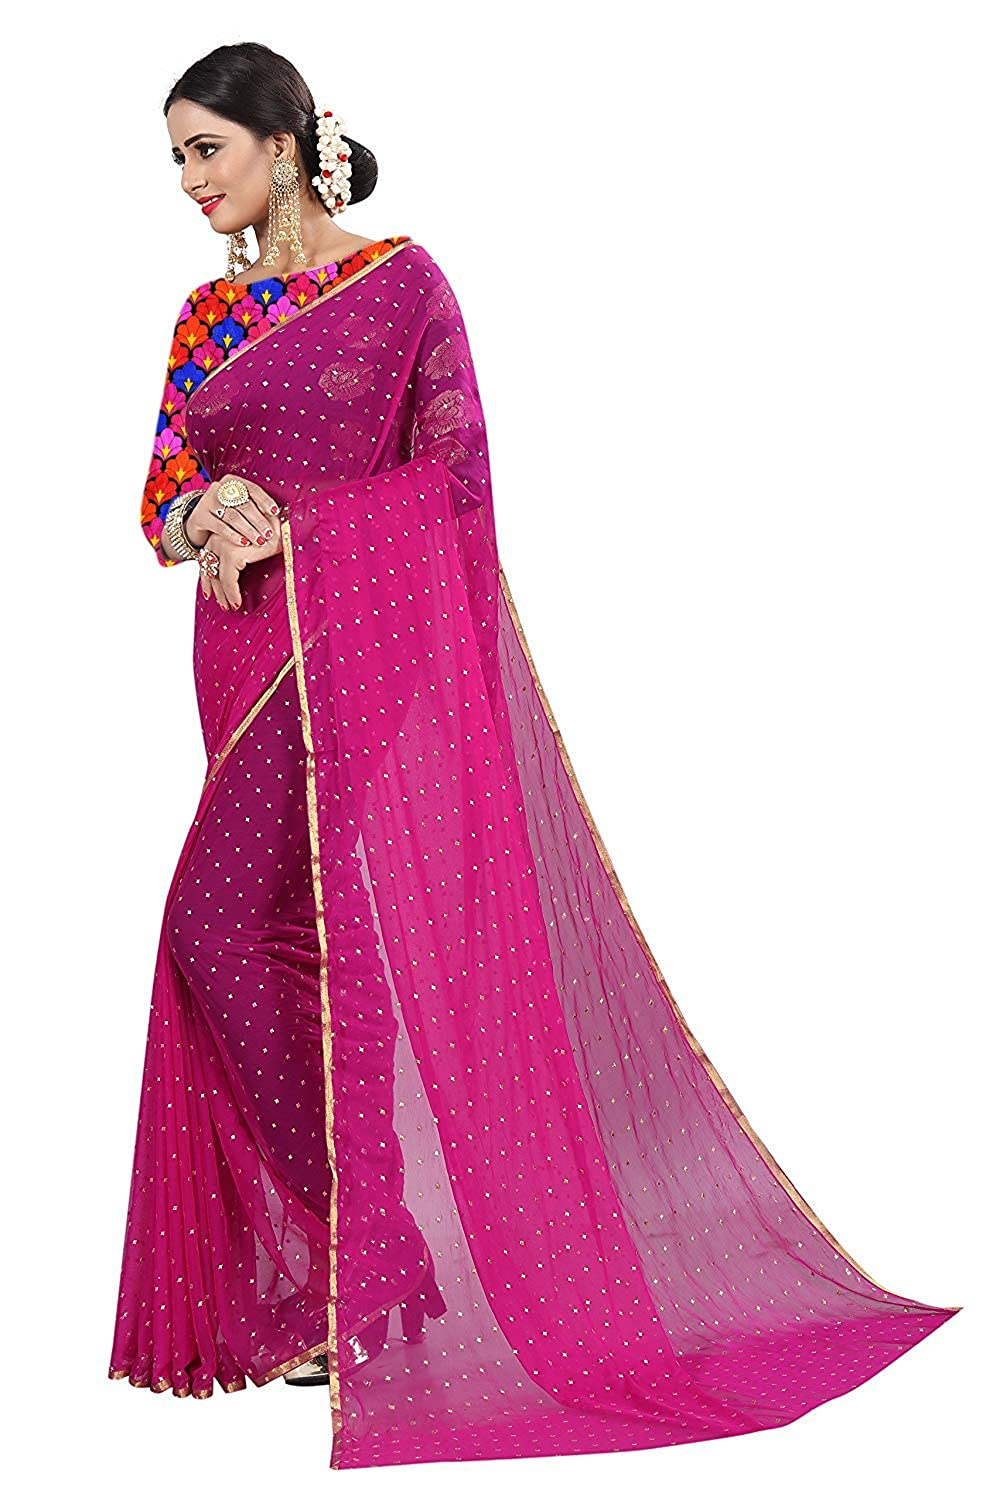 d990d14bf89f7 Krishna Adv Women s Chiffon Saree with Blouse Piece (Pink   Gold)  Amazon.in   Clothing   Accessories